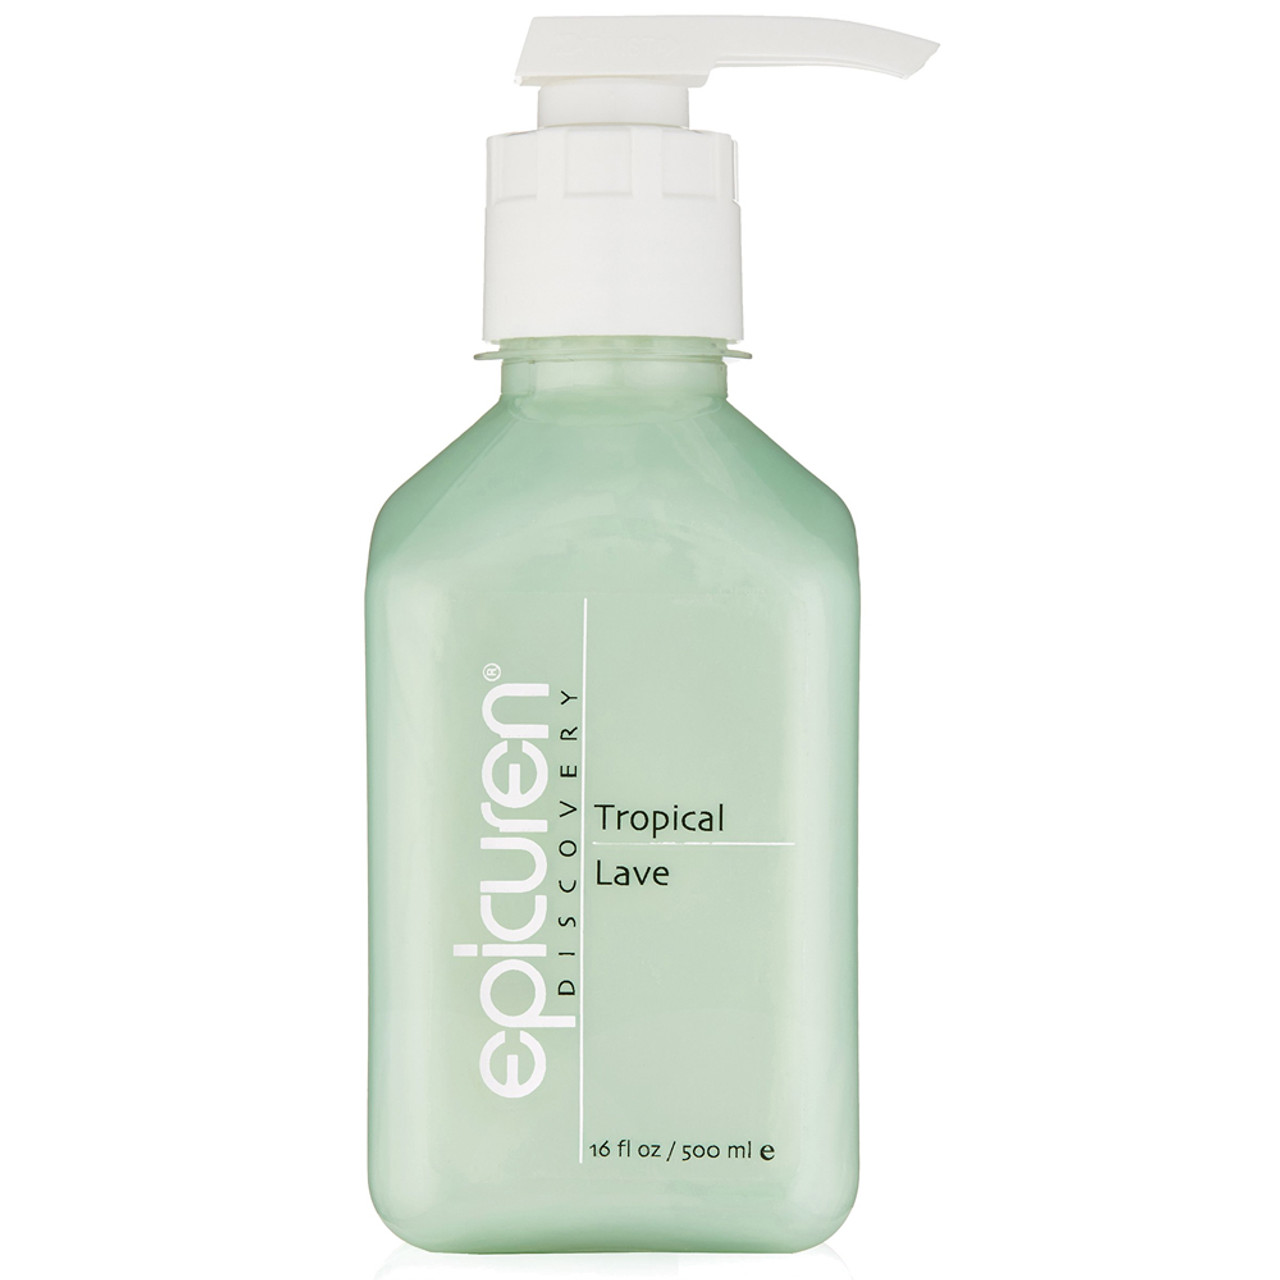 epicuren Discovery Tropical Lave Body Cleanser